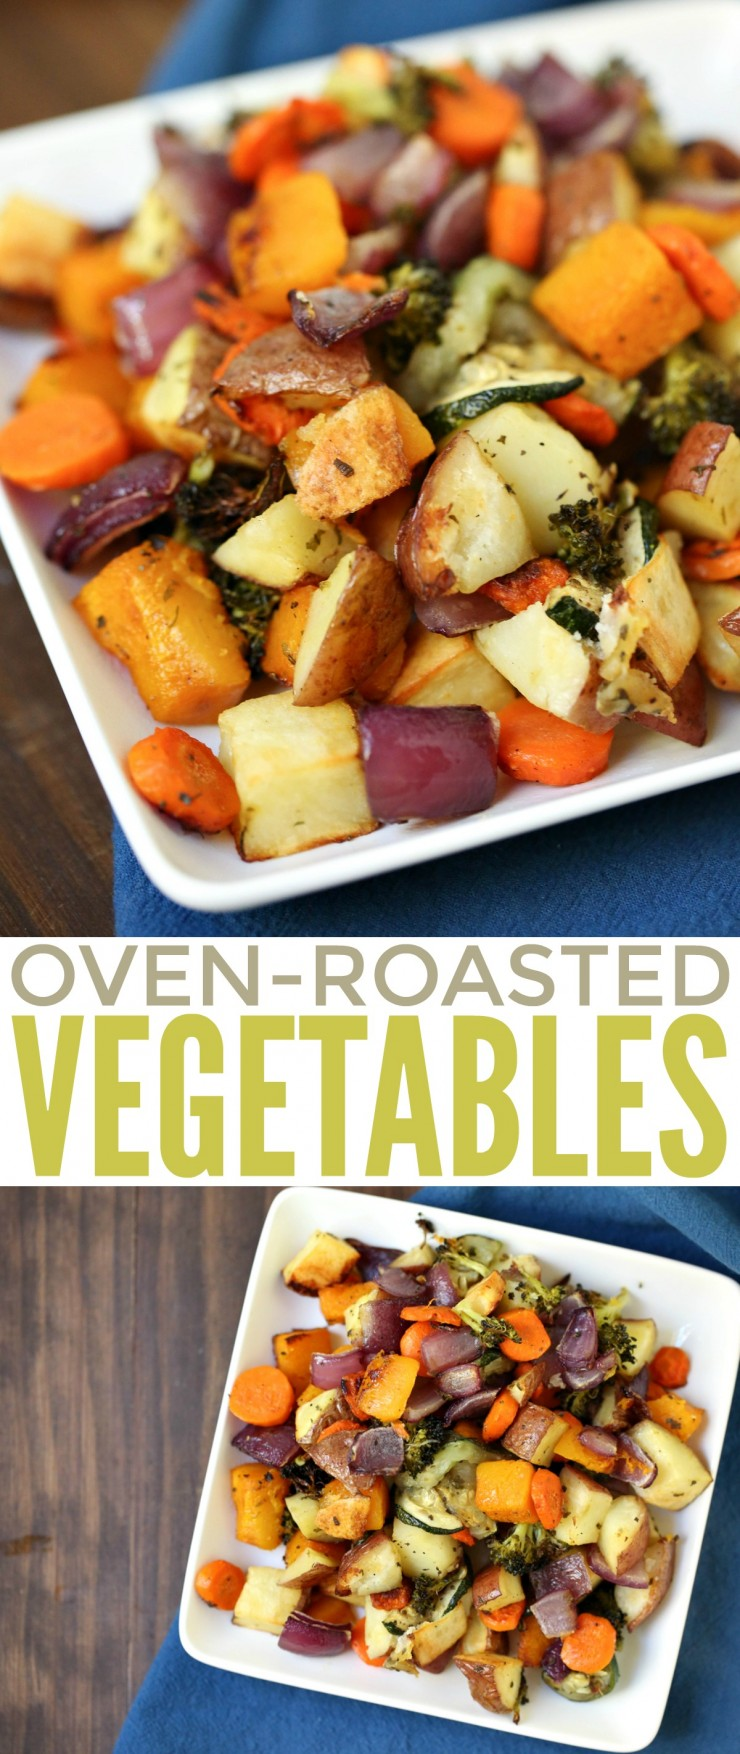 b537d52640d5 Oven-Roasted Vegetables are a delicious side dish staple your family can  enjoy all year